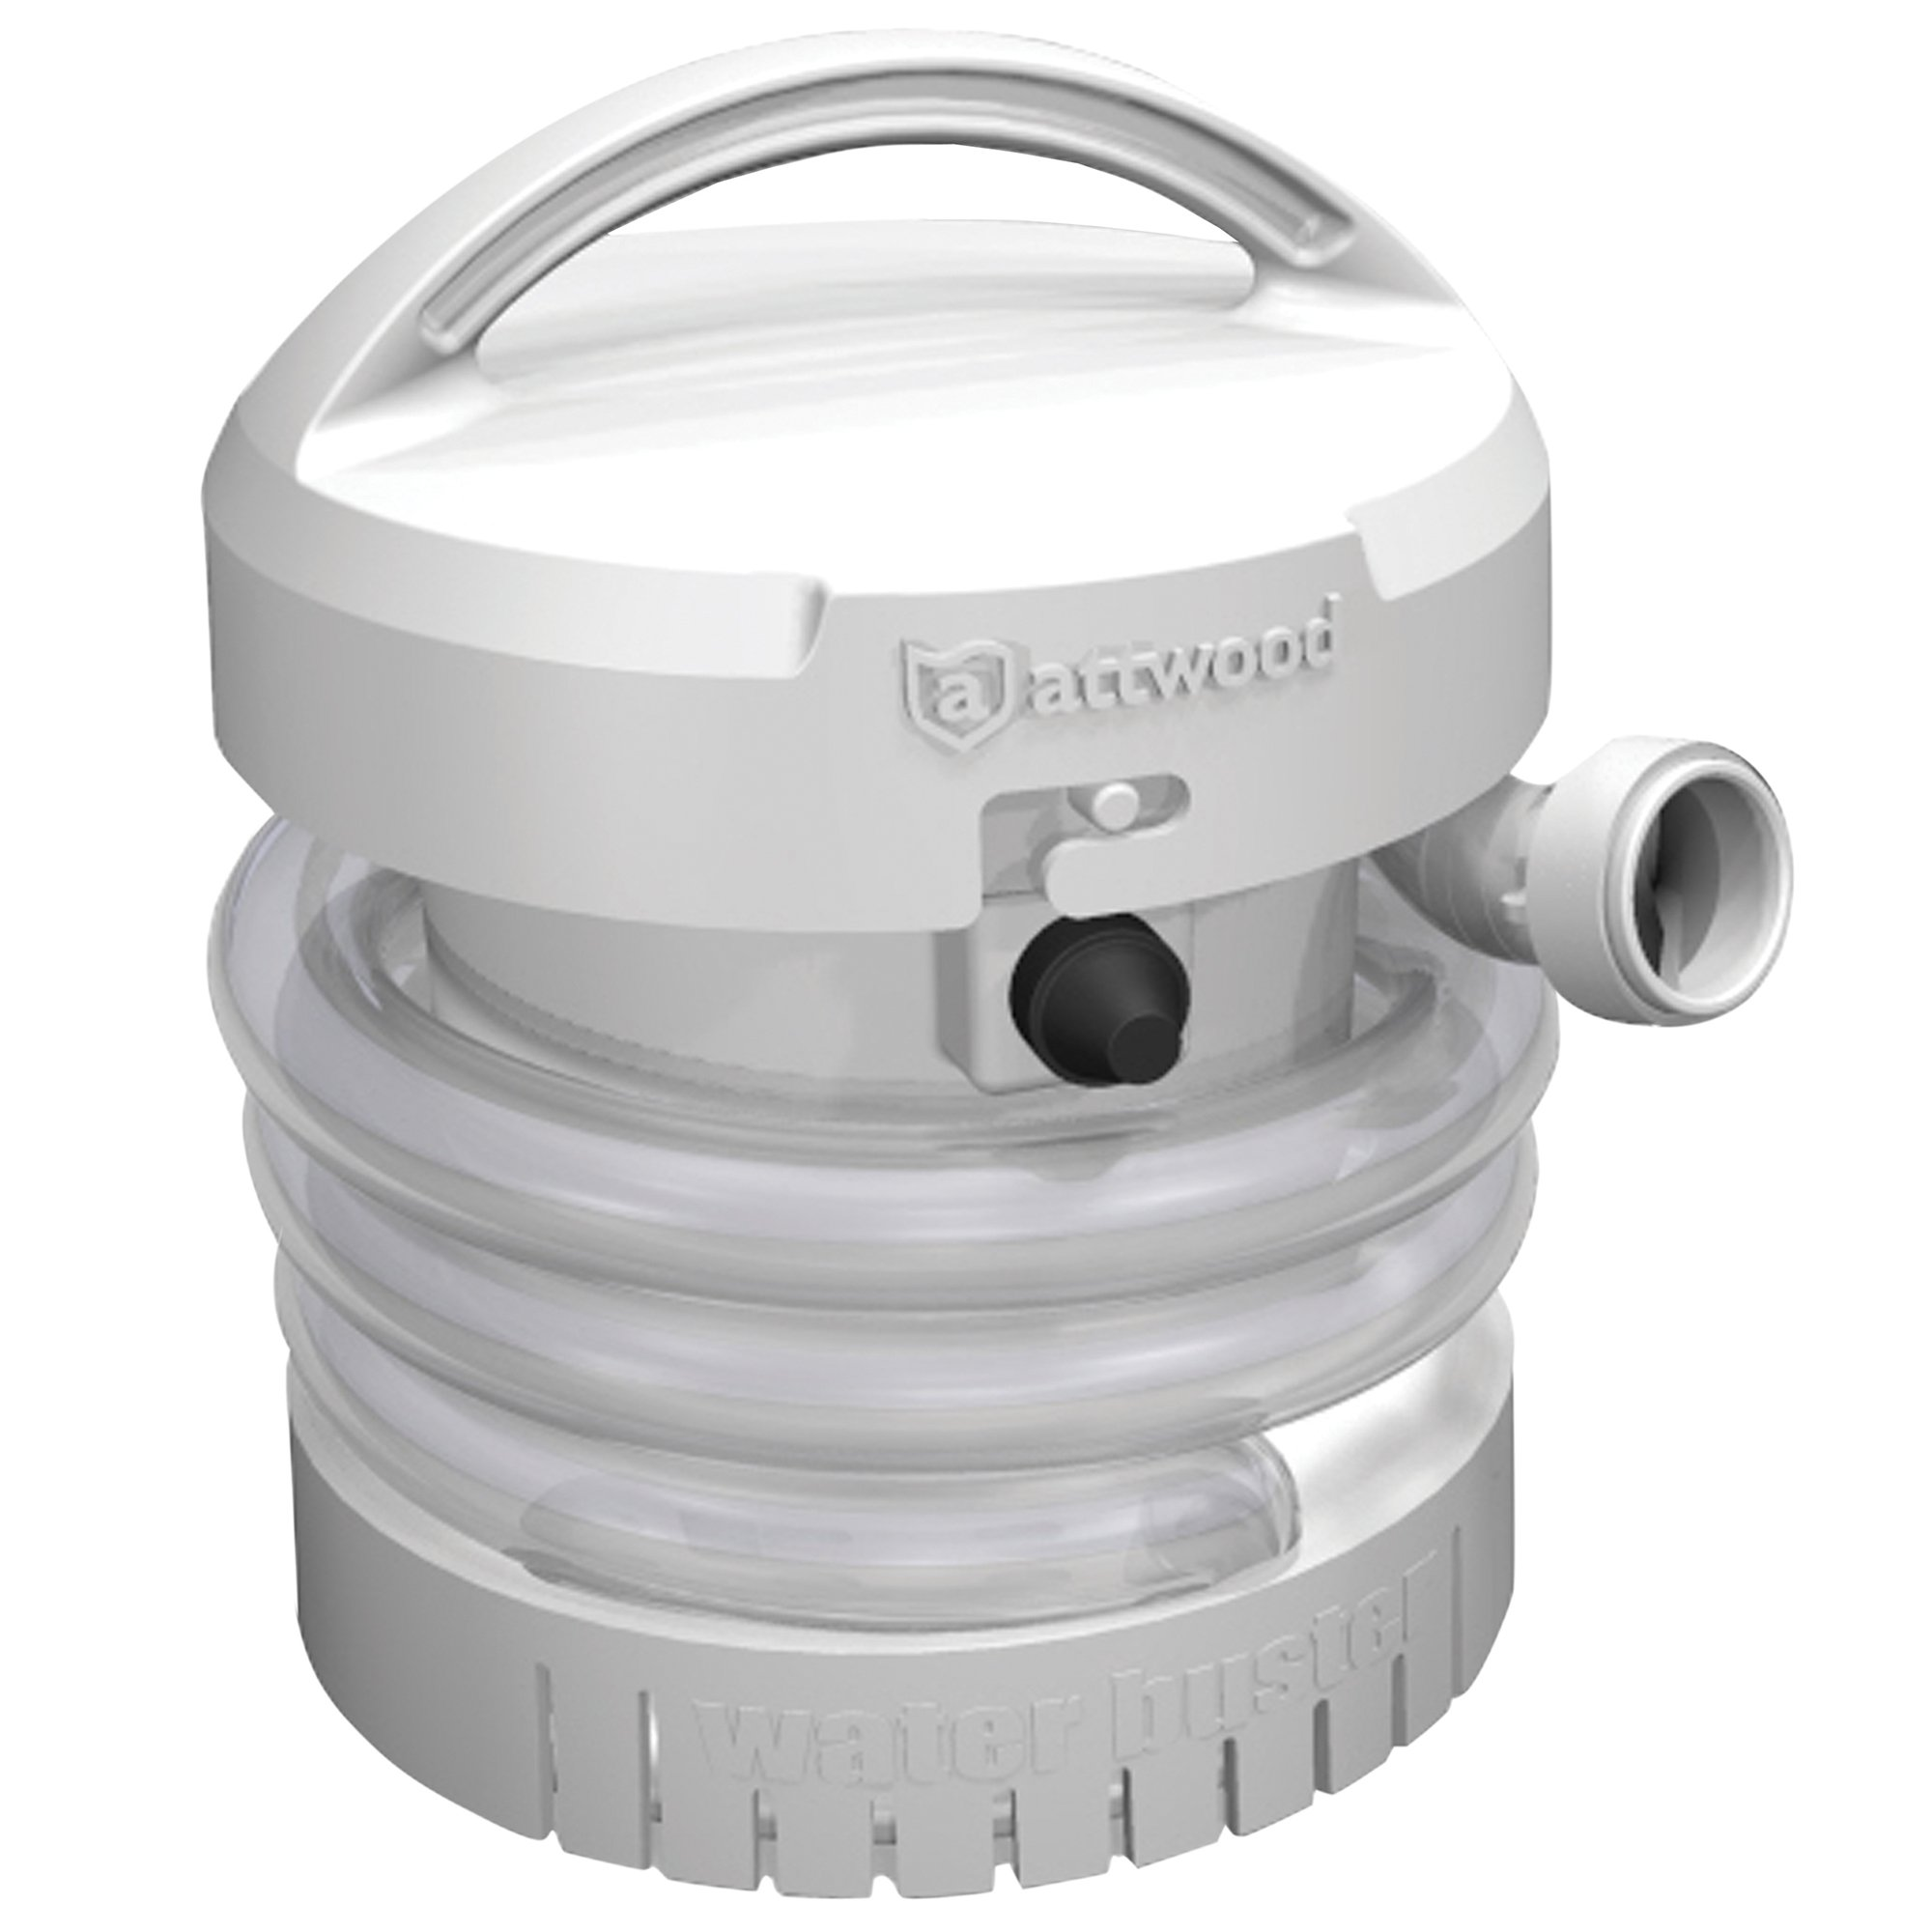 Attwood Marine Water Buster Portable Battery-Operated Pump photo